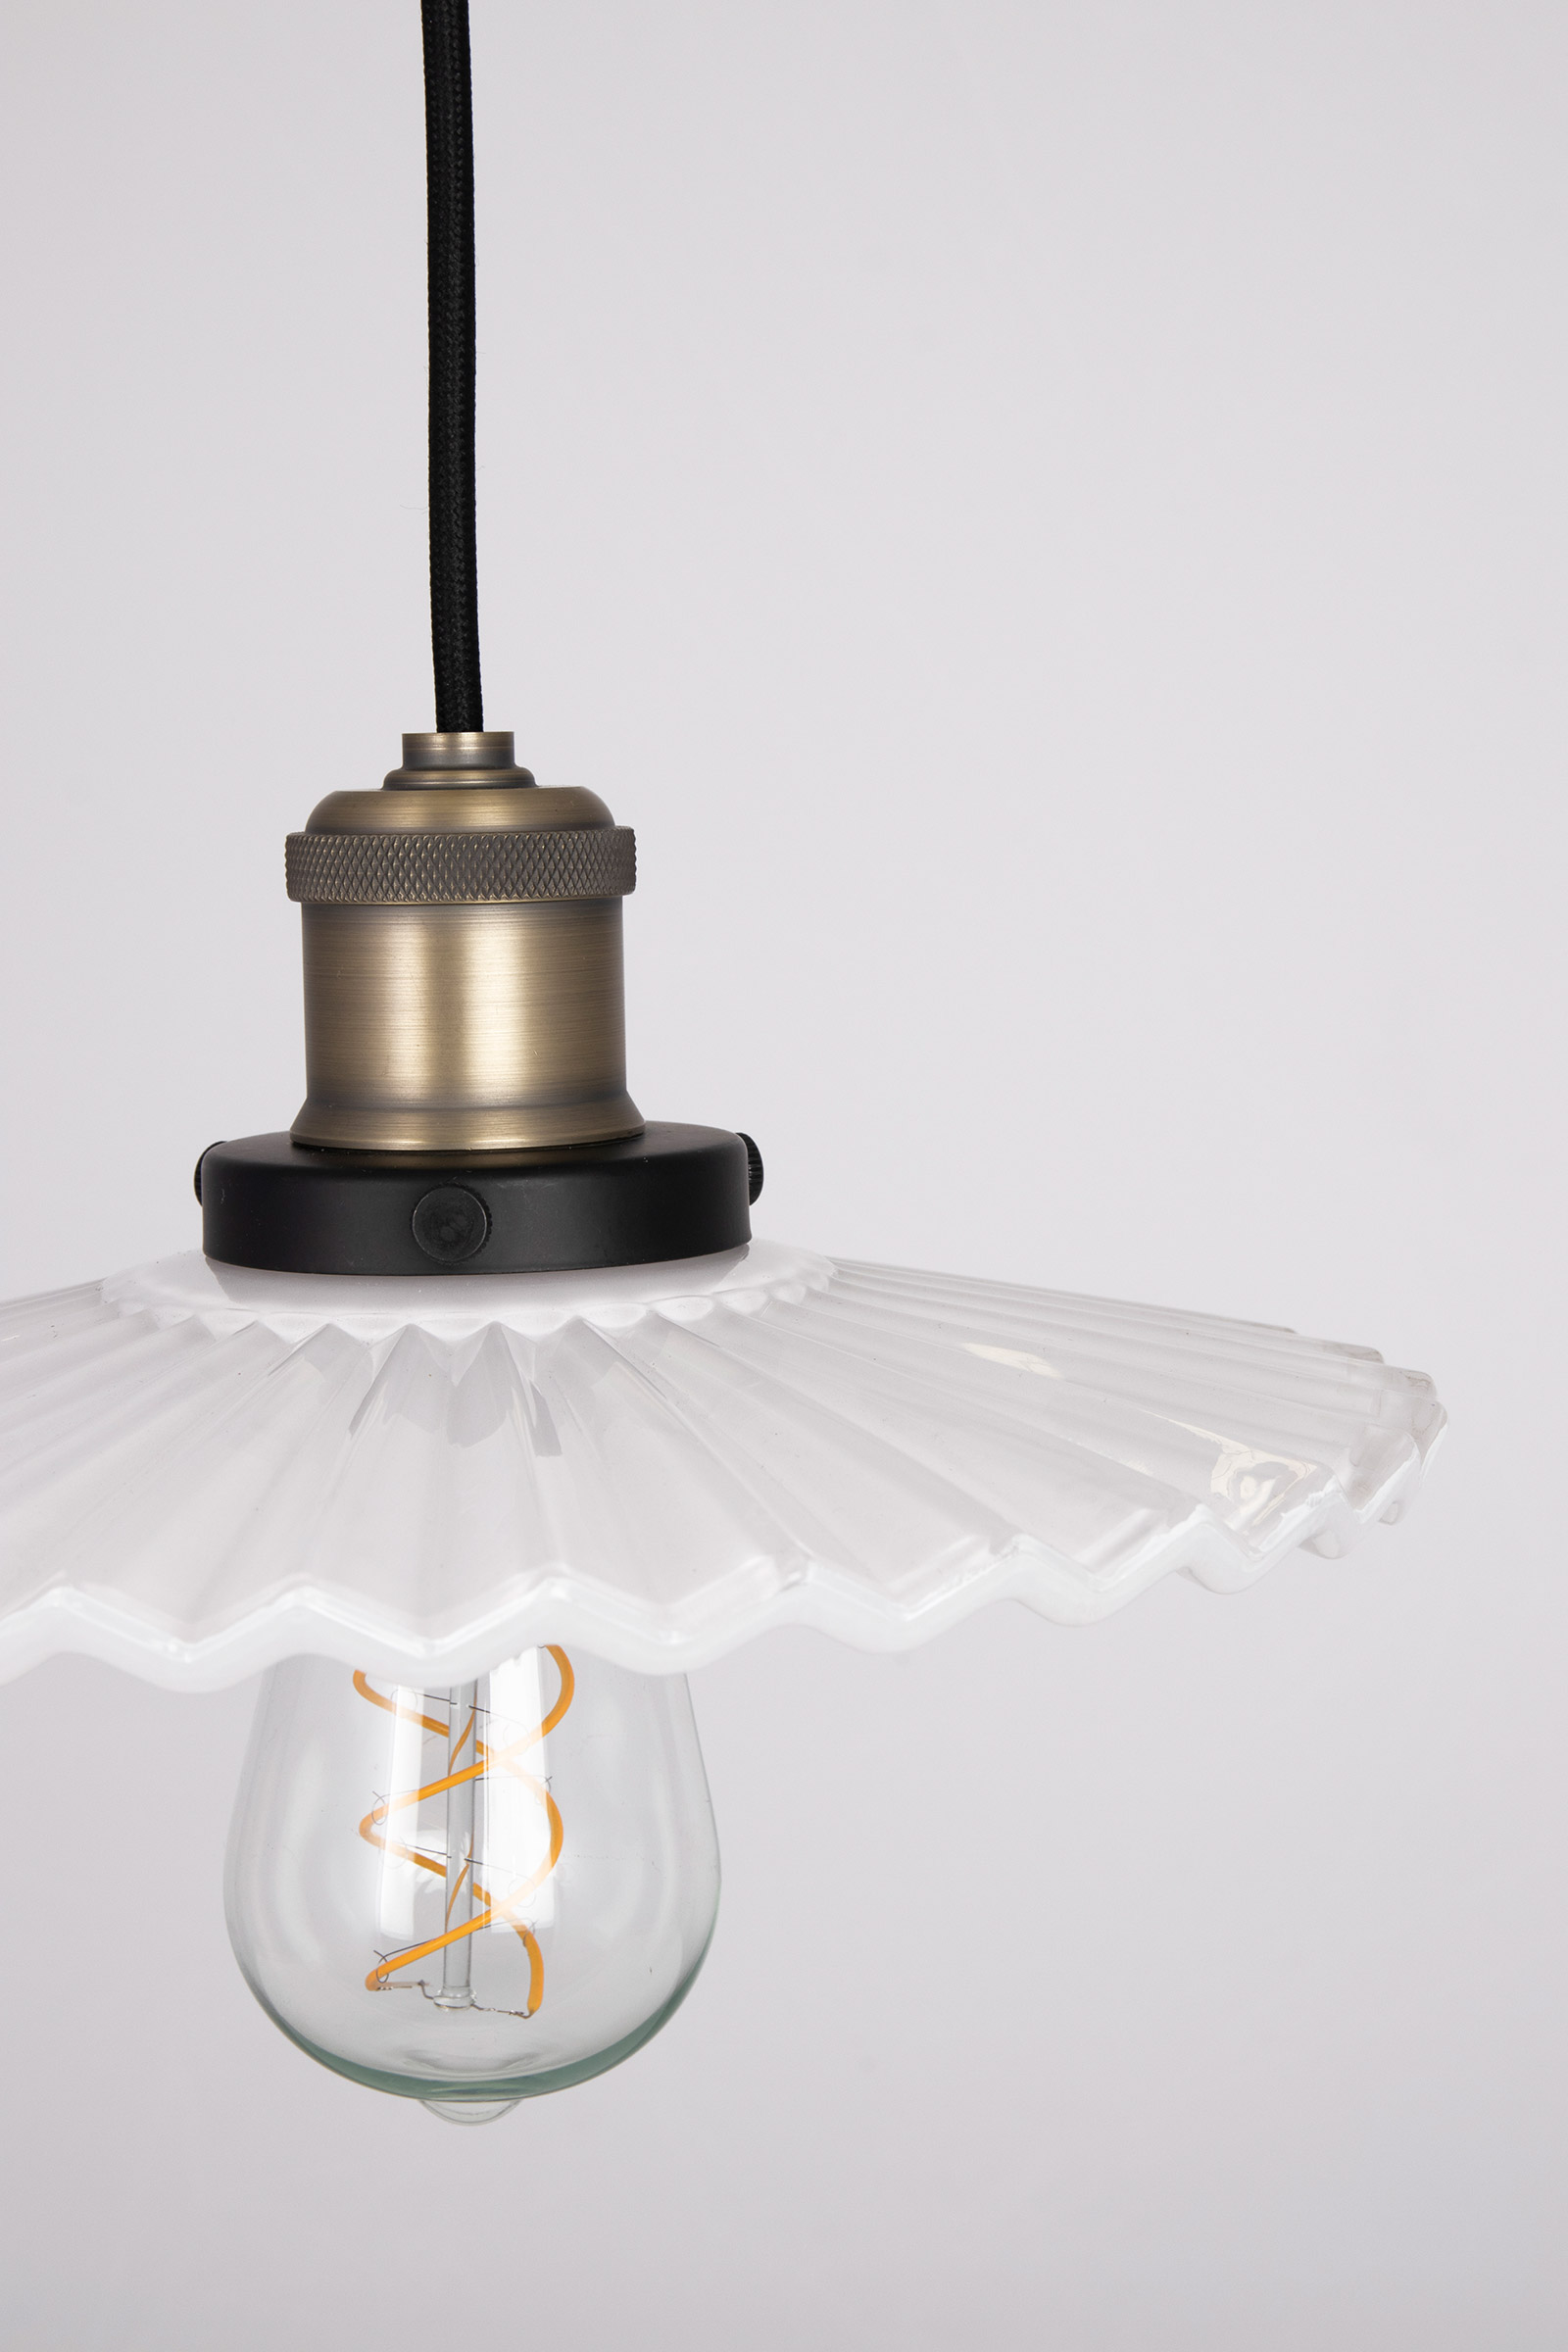 Pendant Cobbler 25, Cobbler is a small pendant in cobbler style inspired by the turn of the century. It has a pleated white glass shade and metal